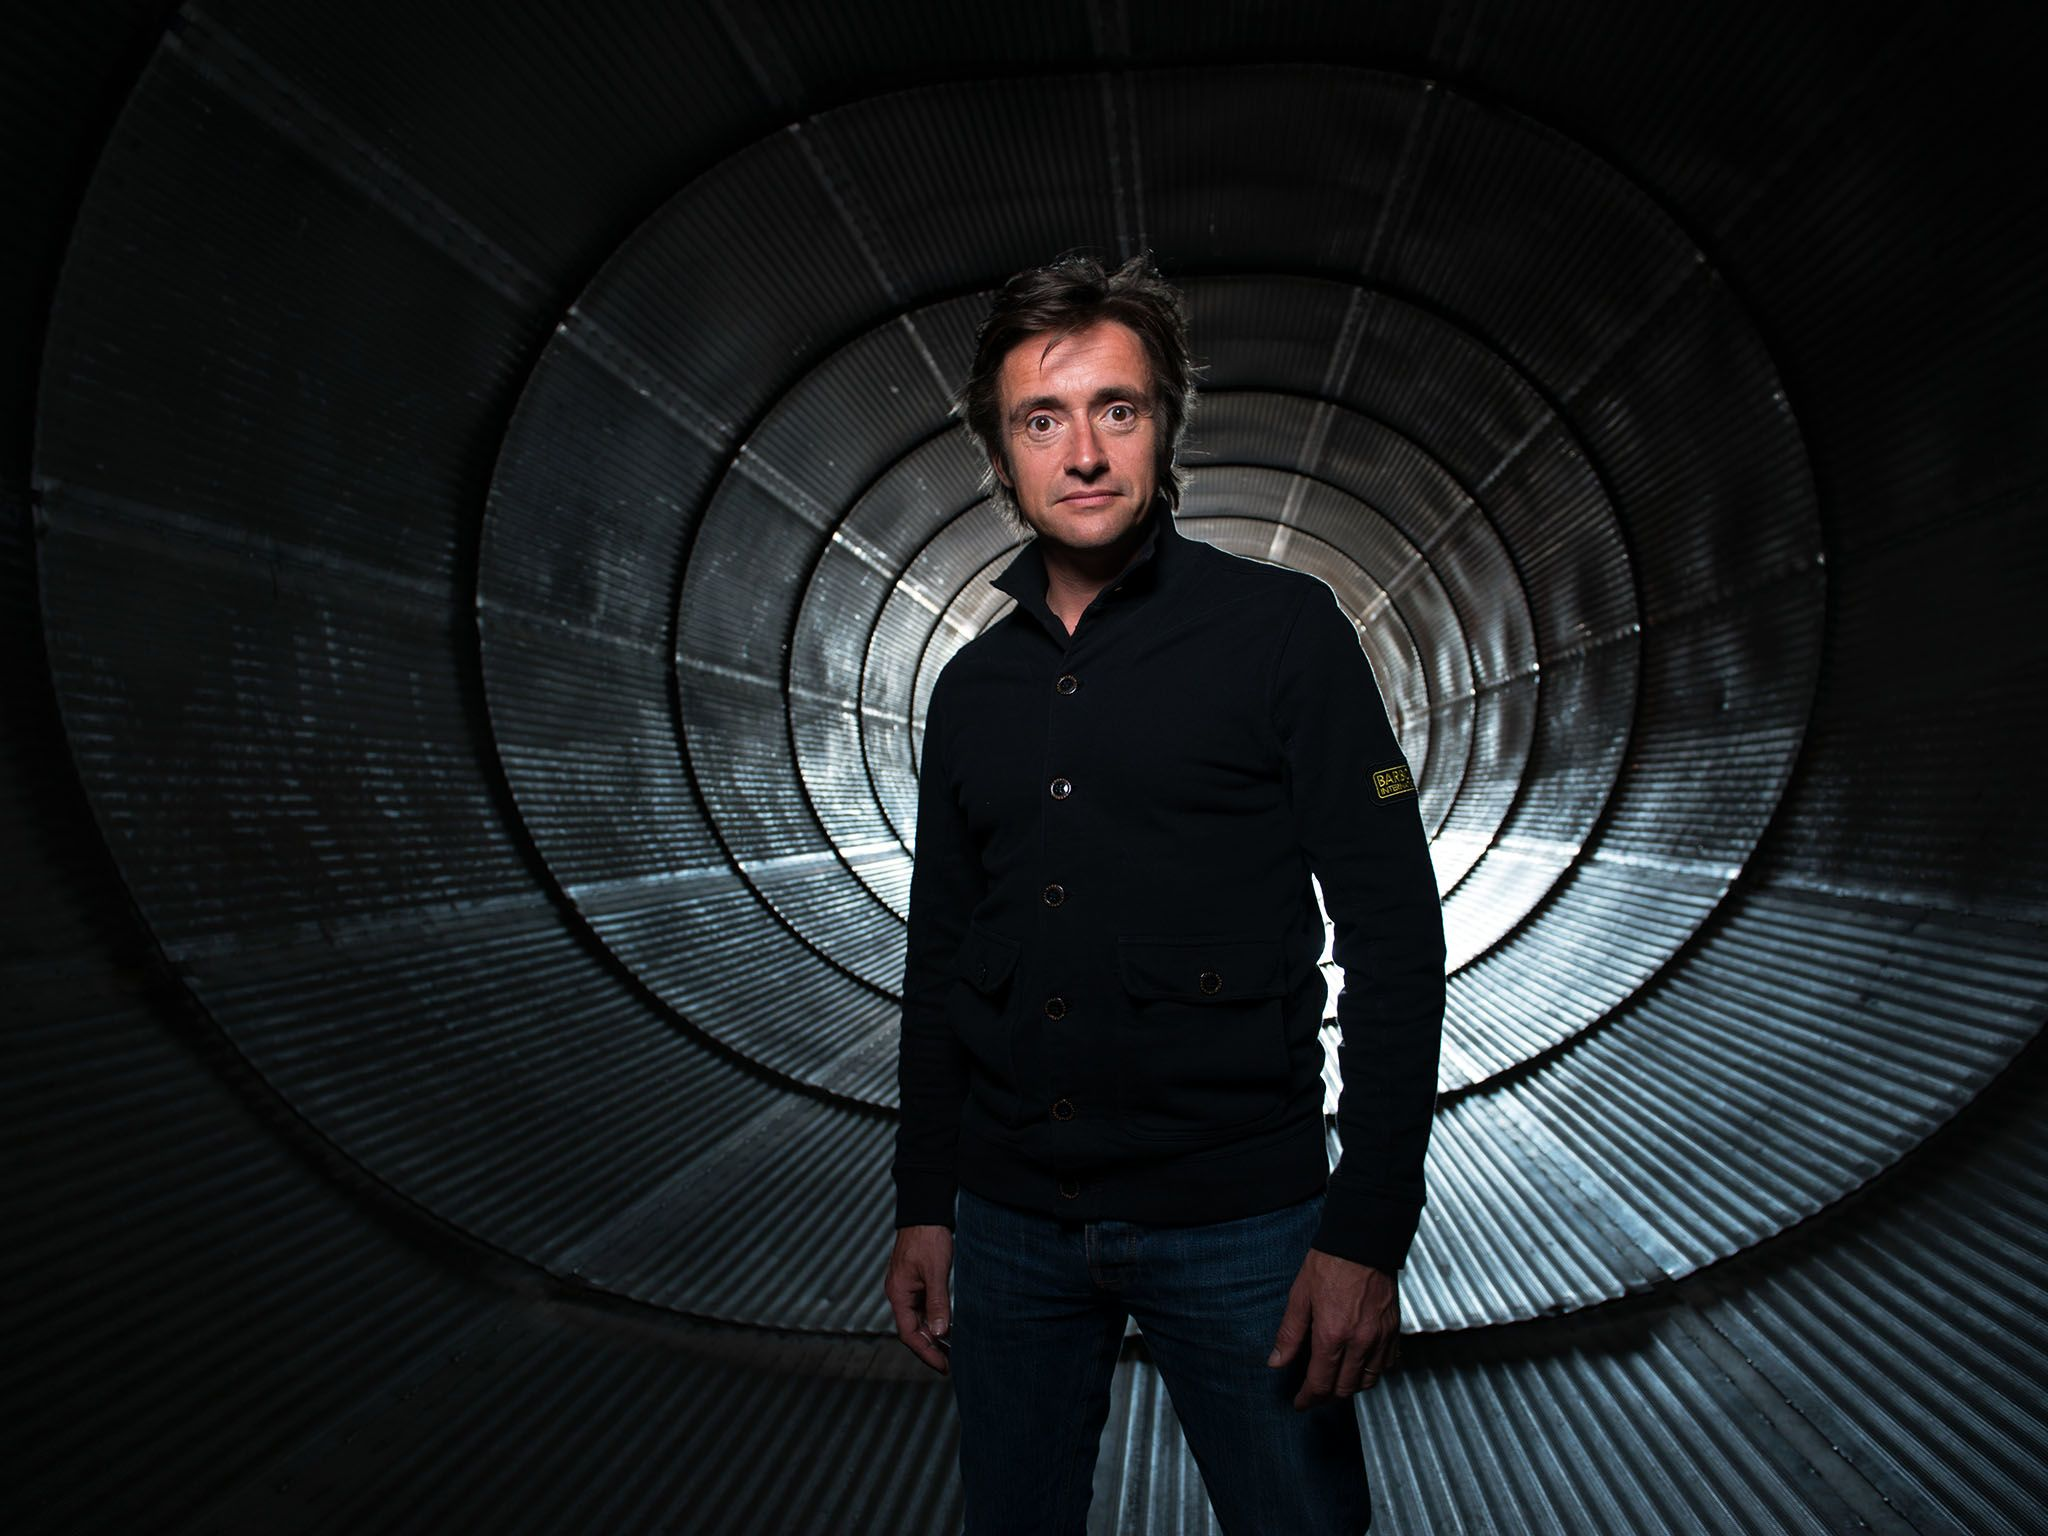 Host Richard Hammond. This image is from Richard Hammond's Wildest Weather. [Фото дня - Август 2015]